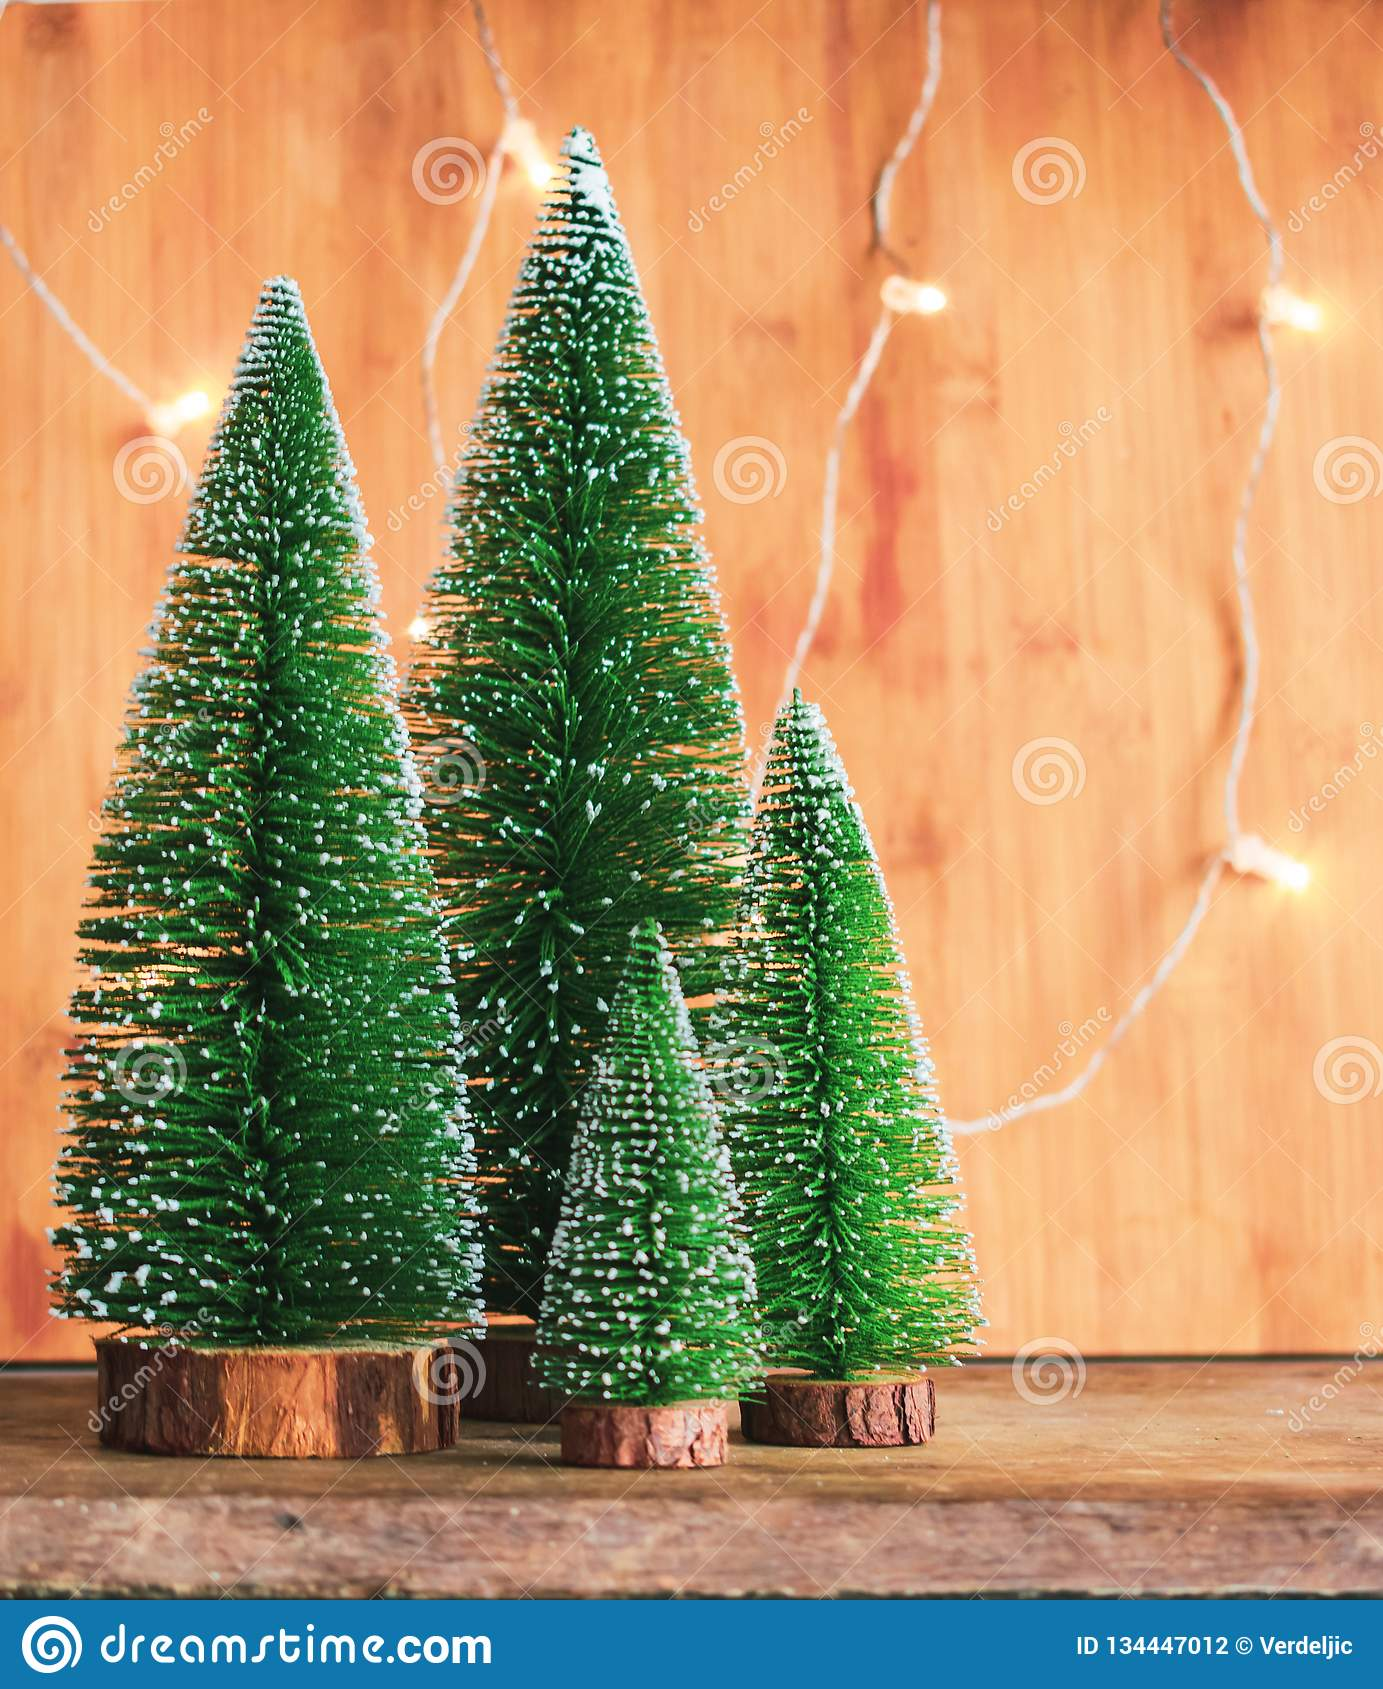 Green Snowy Christmas Trees Decoration And Lights On Wooden Background Stock Photo Image Of Happy Rustic 134447012